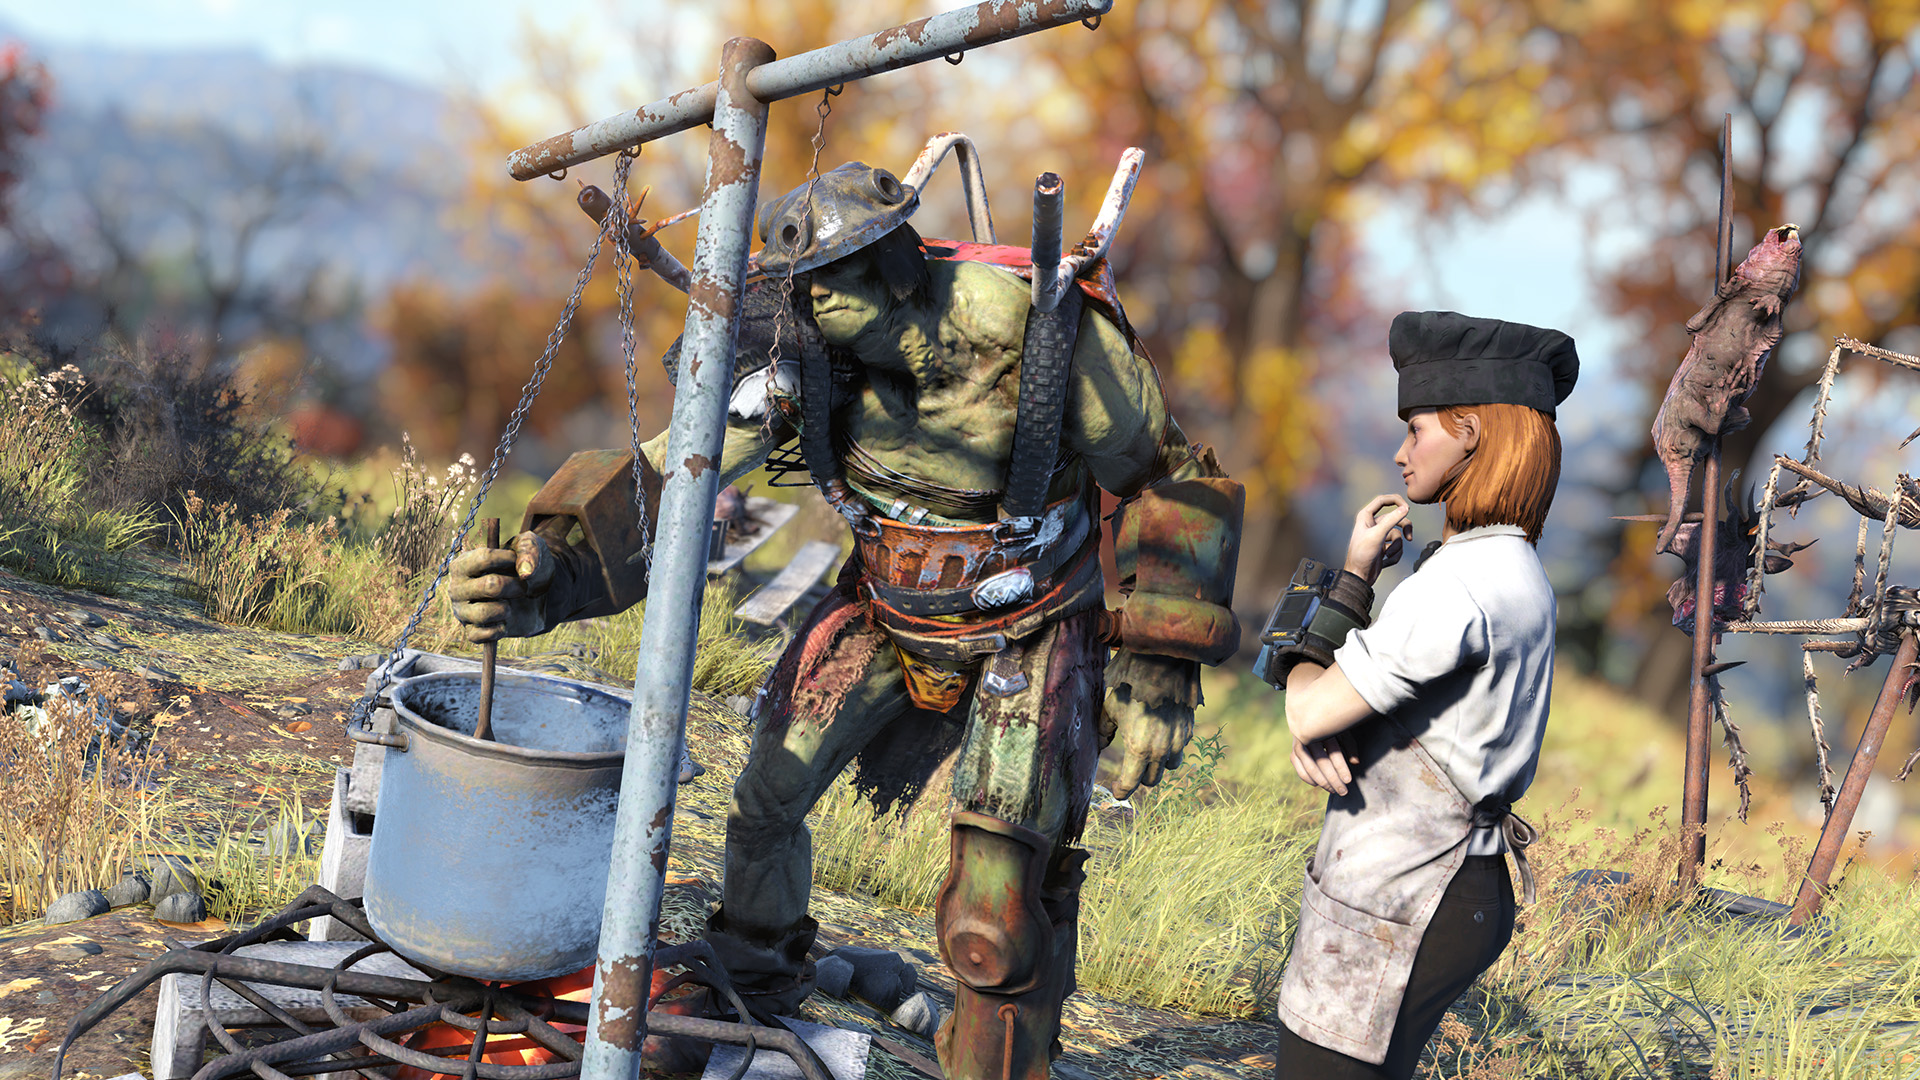 Fallout 76 - Grahm and a player barbecue some meat